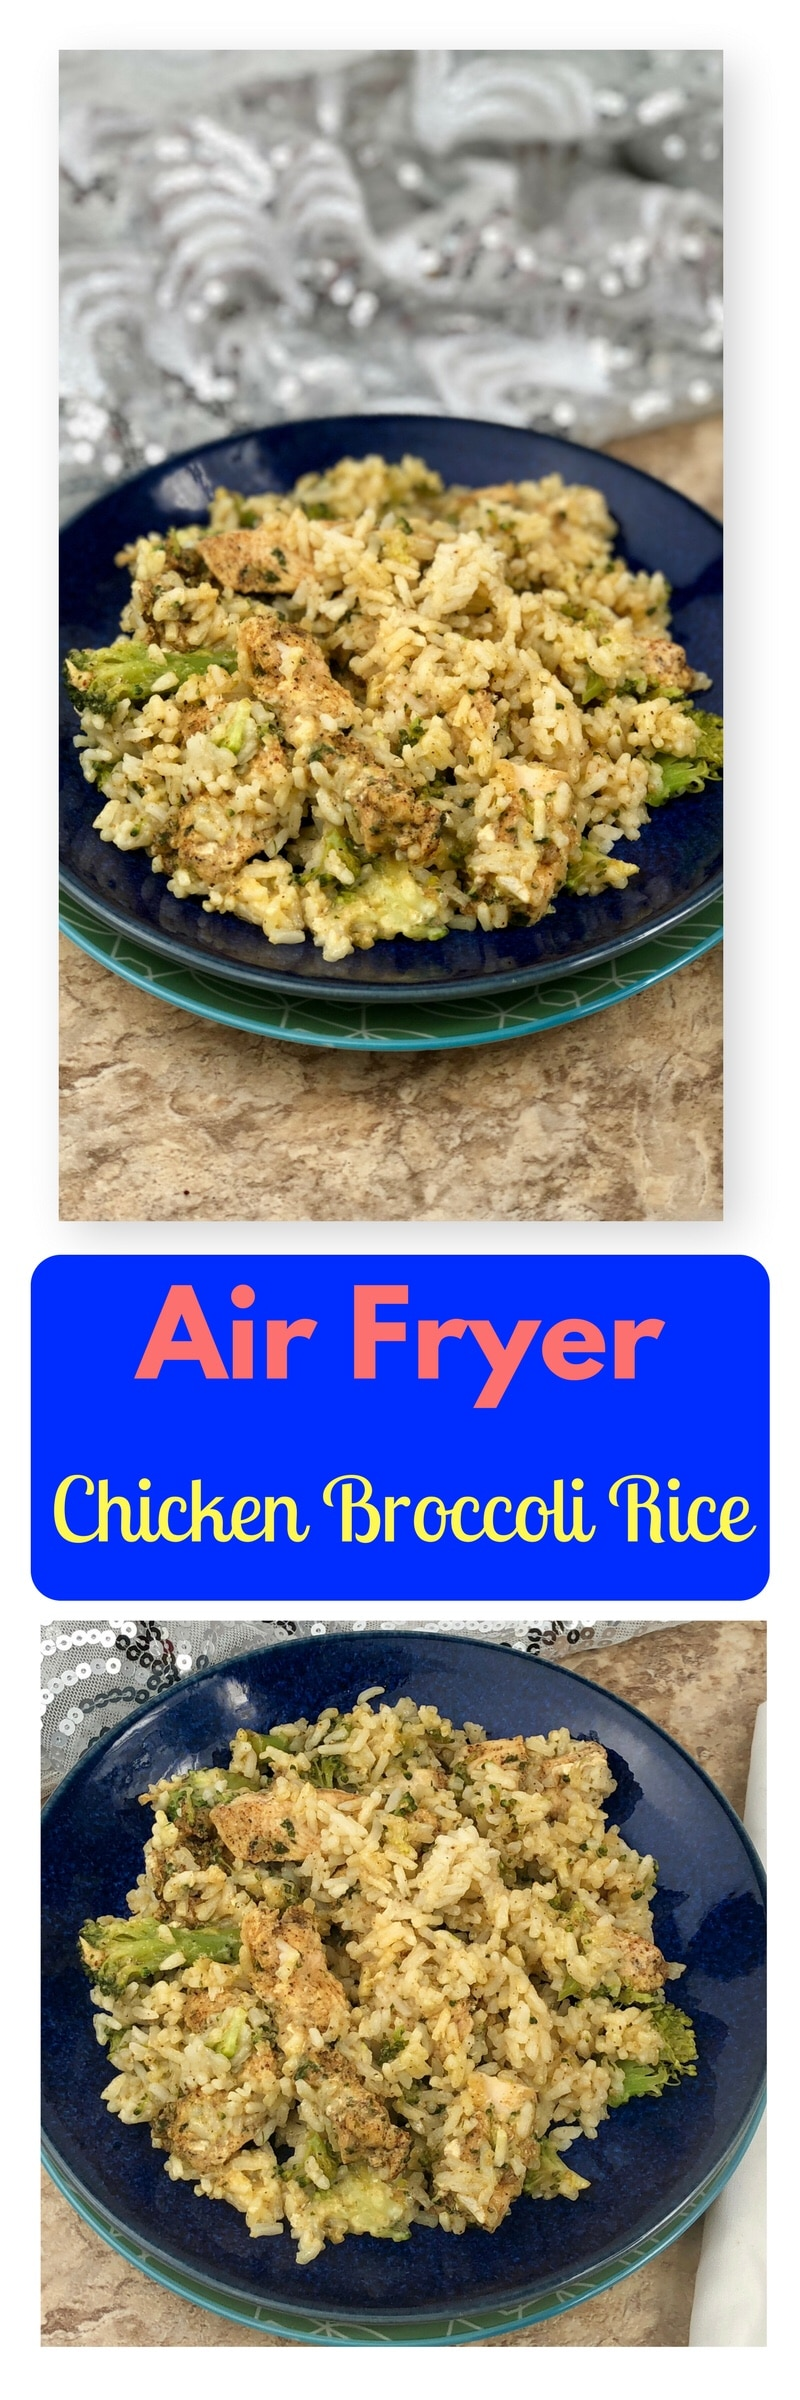 Let me welcome you all to one of my favorite Air Fryer dishes. This creamy Creamy Air Fryer Chicken Broccoli Rice is a very simple recipe to make that creates a single serve dish. You create that all-in-one healthy dinner in foil packets that are rich in flavor and will leave your family feeling satisfied. If you serve the chicken broccoli rice in the packets, there is a lot less cleanup afterward! The chicken is nice and juicy from the foil sealing in the moisture as it cooks, it truly is a blue ribbon winning dish.